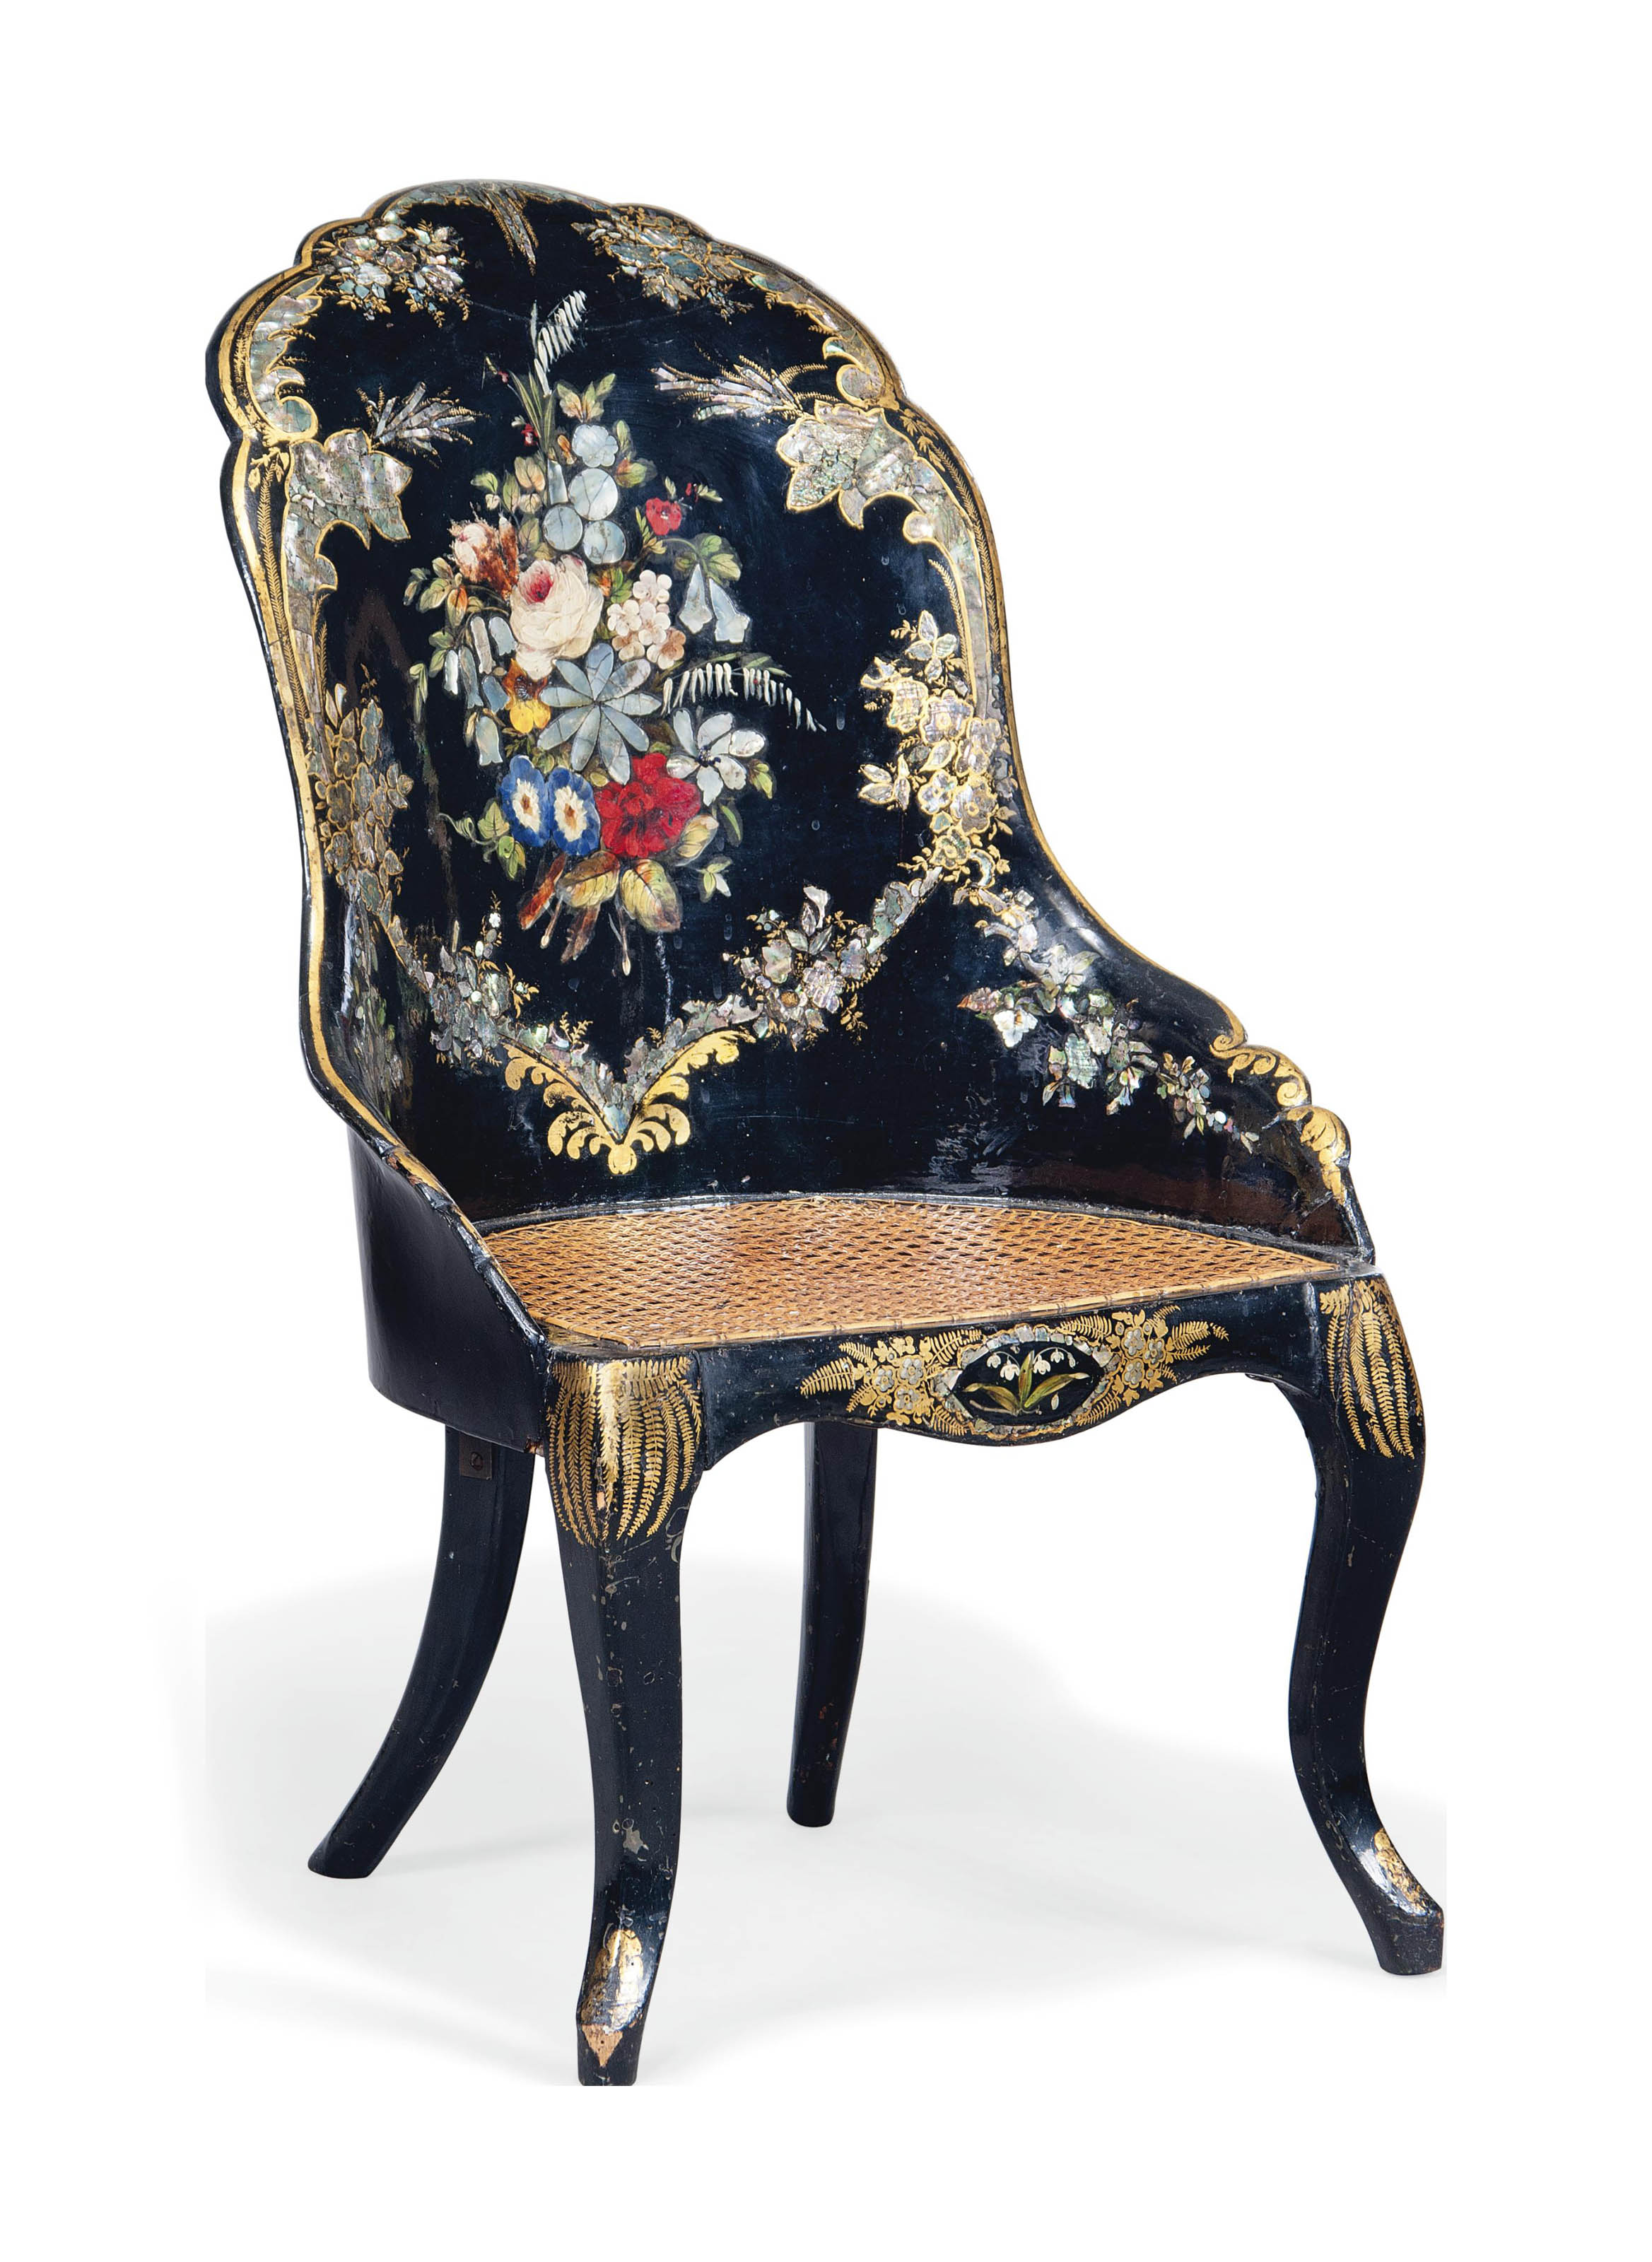 A VICTORIAN GILT, POLYCHROME JAPANNED AND MOTHER-OF-PEARL INLAID PAPIER MACHE ARMCHAIR